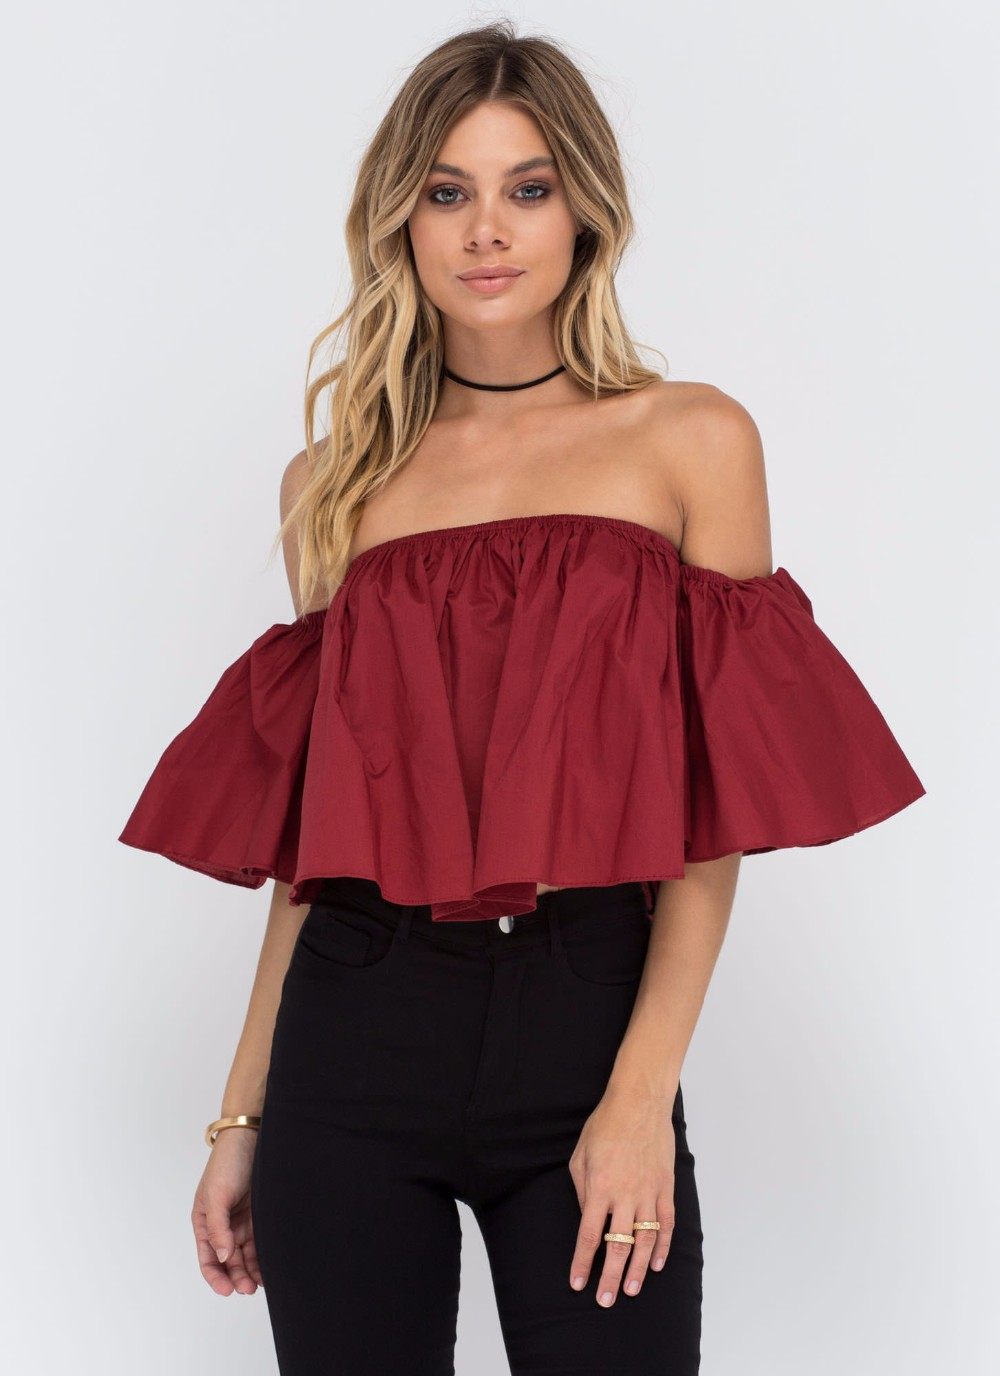 HTB1.vyjNFXXXXXBXXXXq6xXFXXXi - T shirt women butterfly sleeve off the shoulder crop top 2017